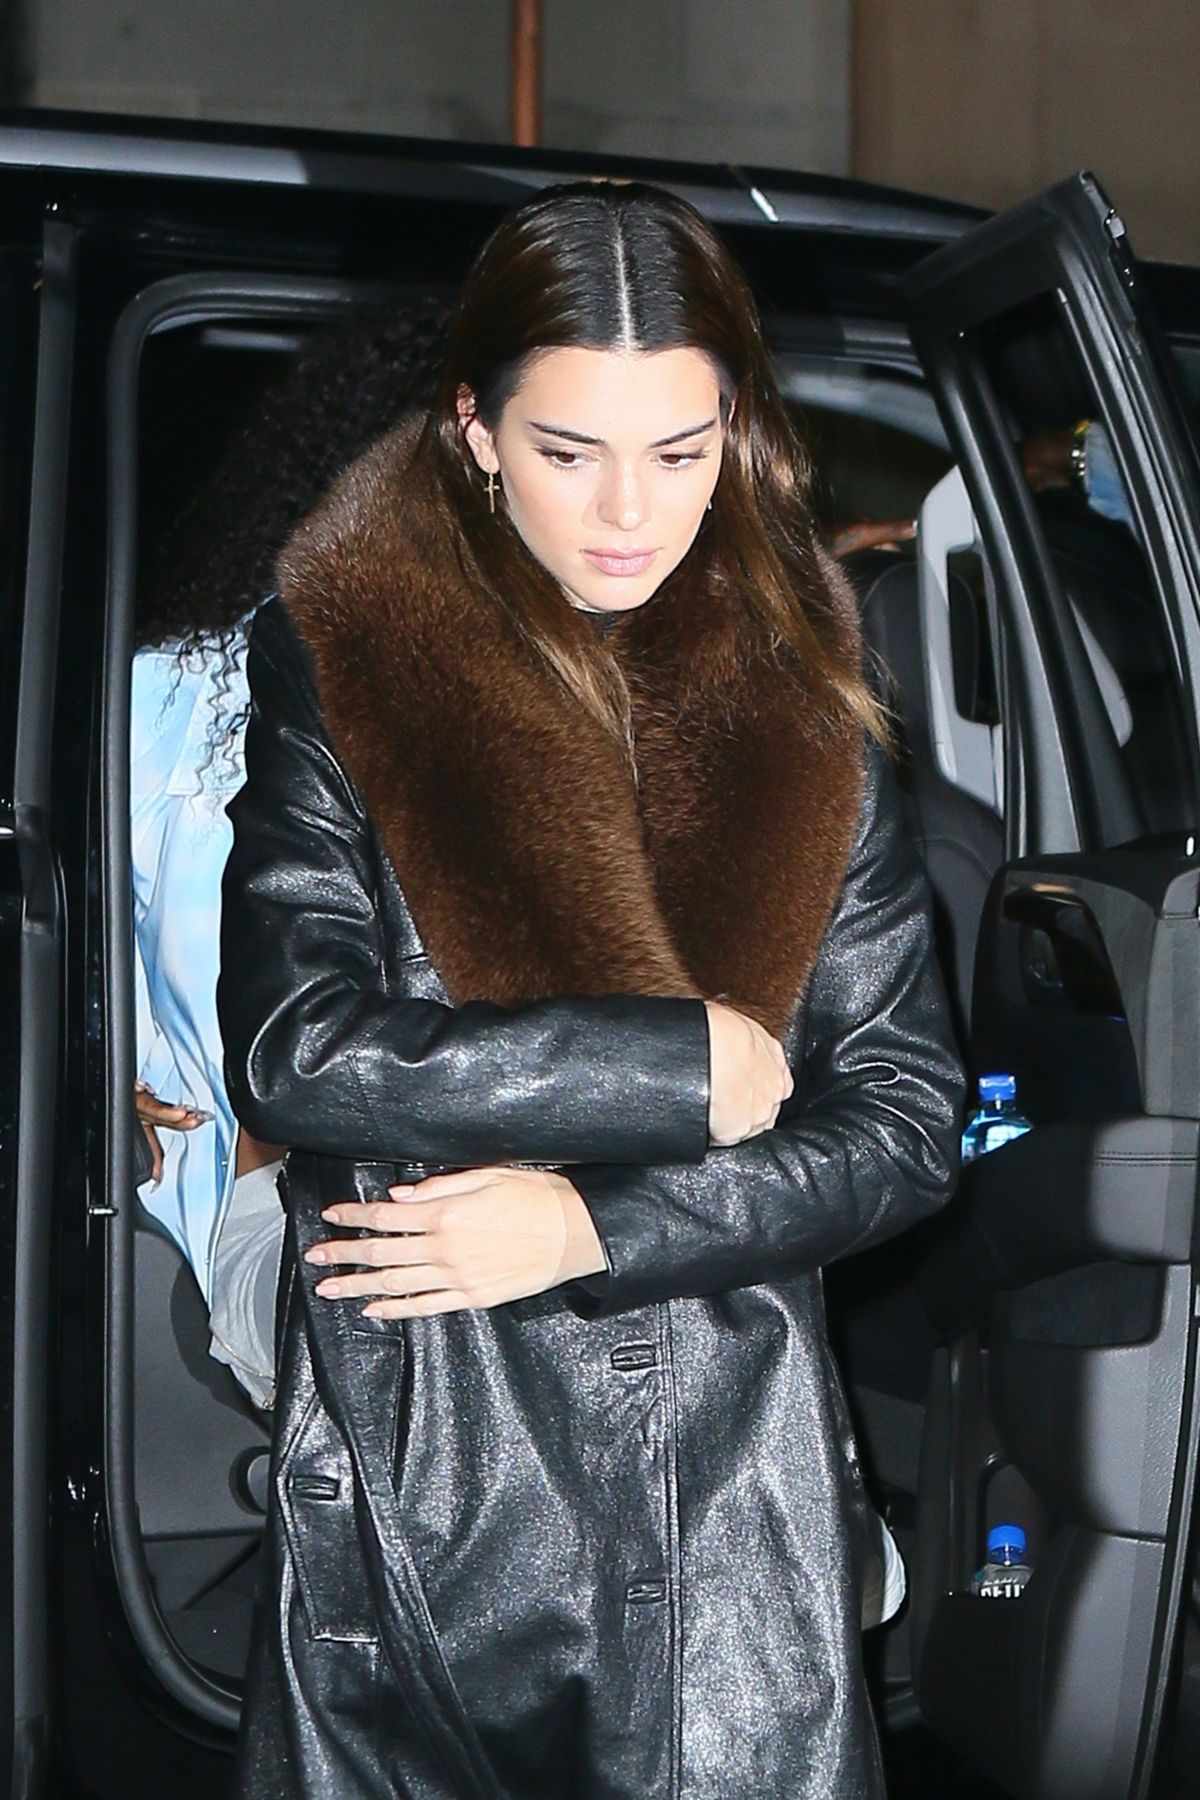 Kendall Jenner in a Black Spandex Shorts Brings Her Dog at